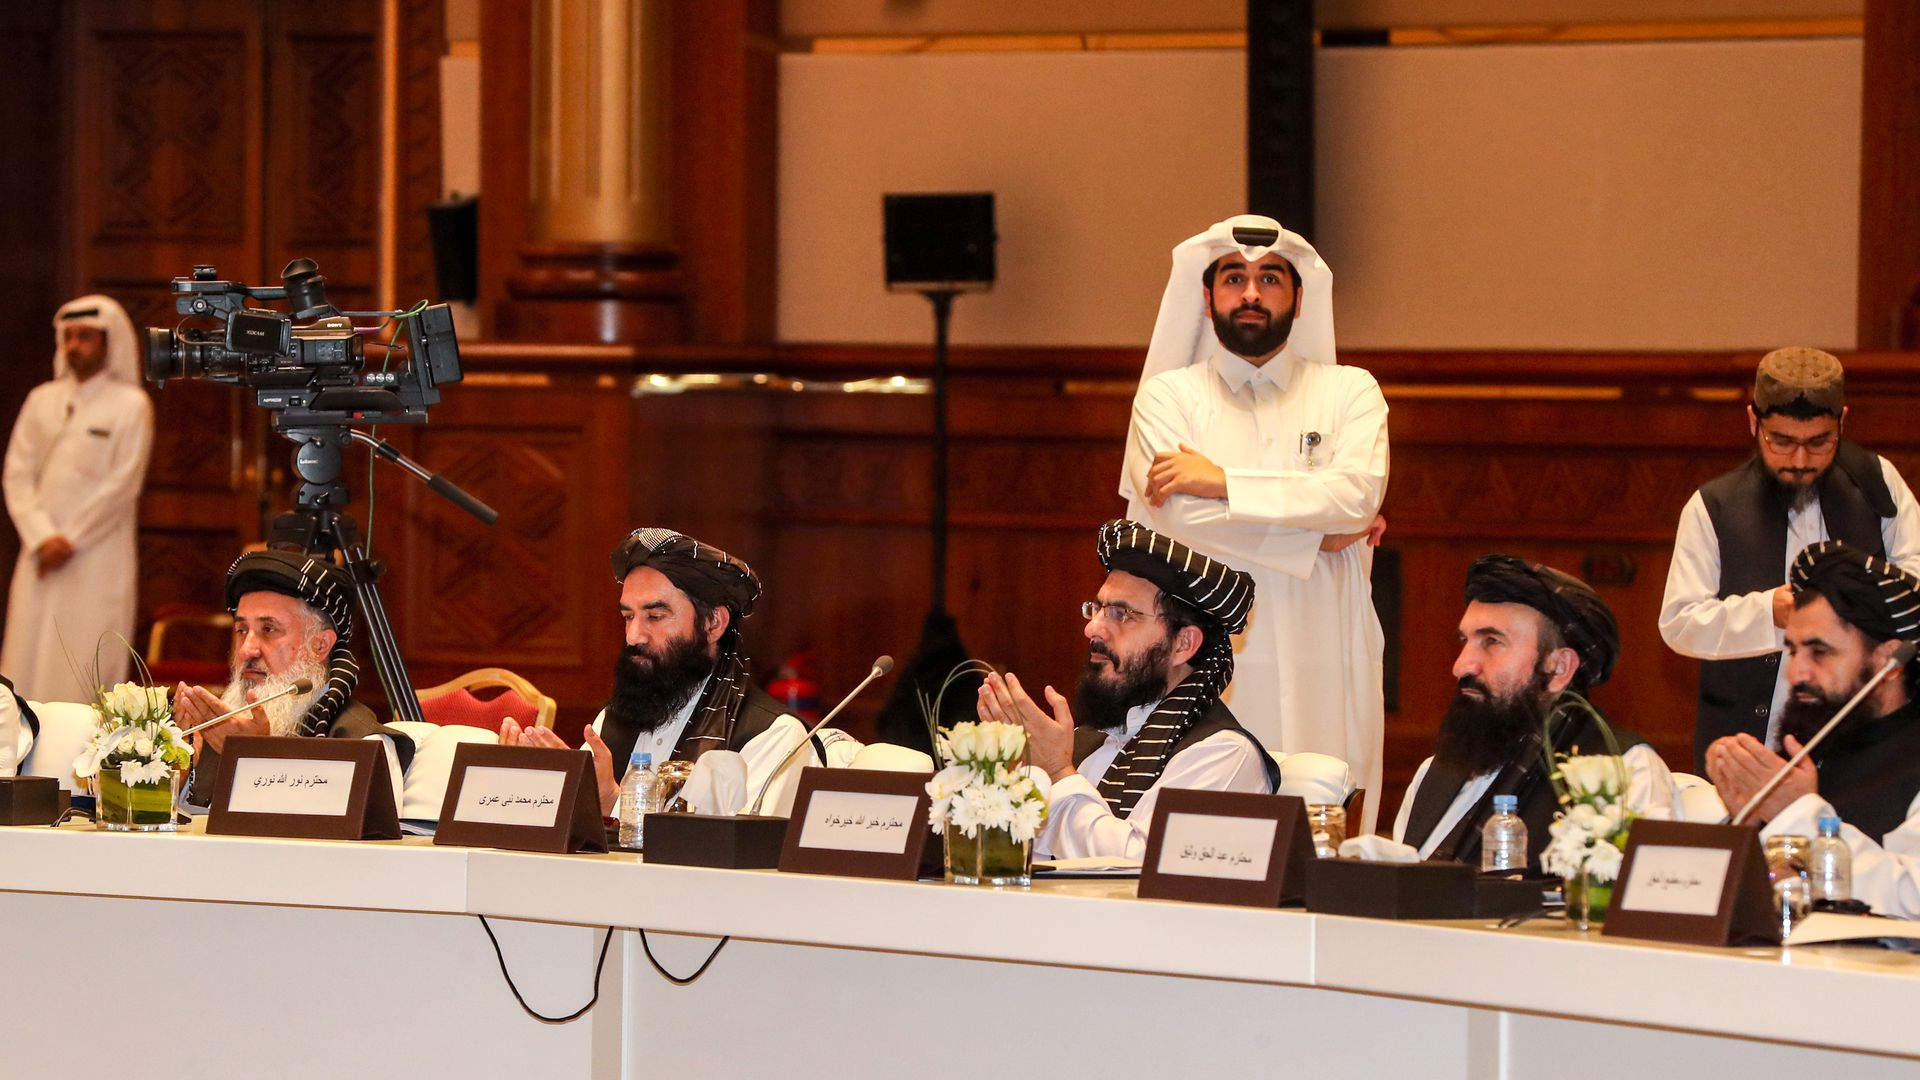 Taliban leaders during peace talks in Qatar